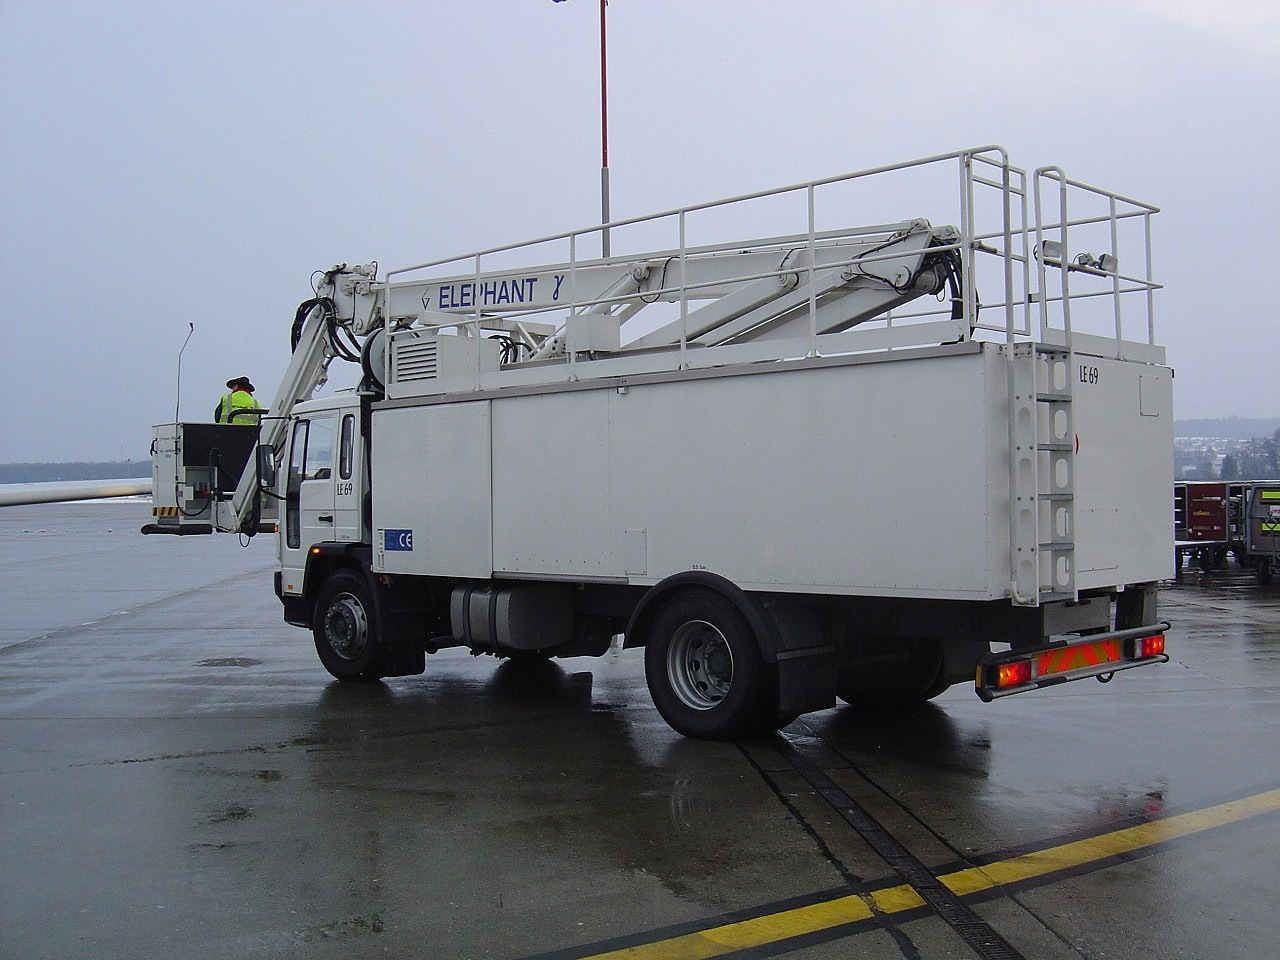 Volvo Elephant De-Icing Truck. View Download Wallpaper. 1280x960. Comments